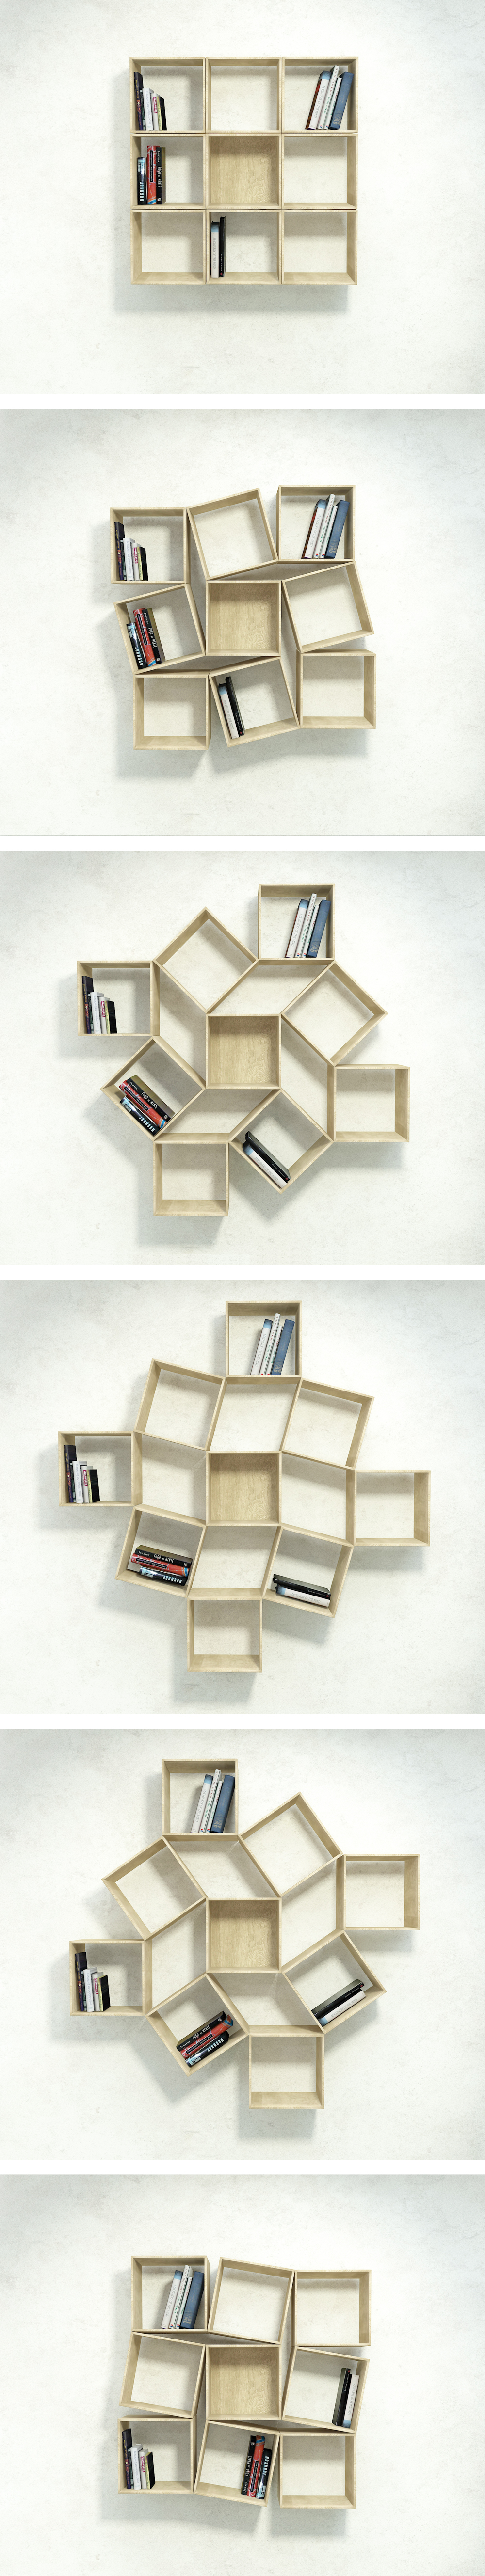 amazing rotatable bookcase: squaring paln